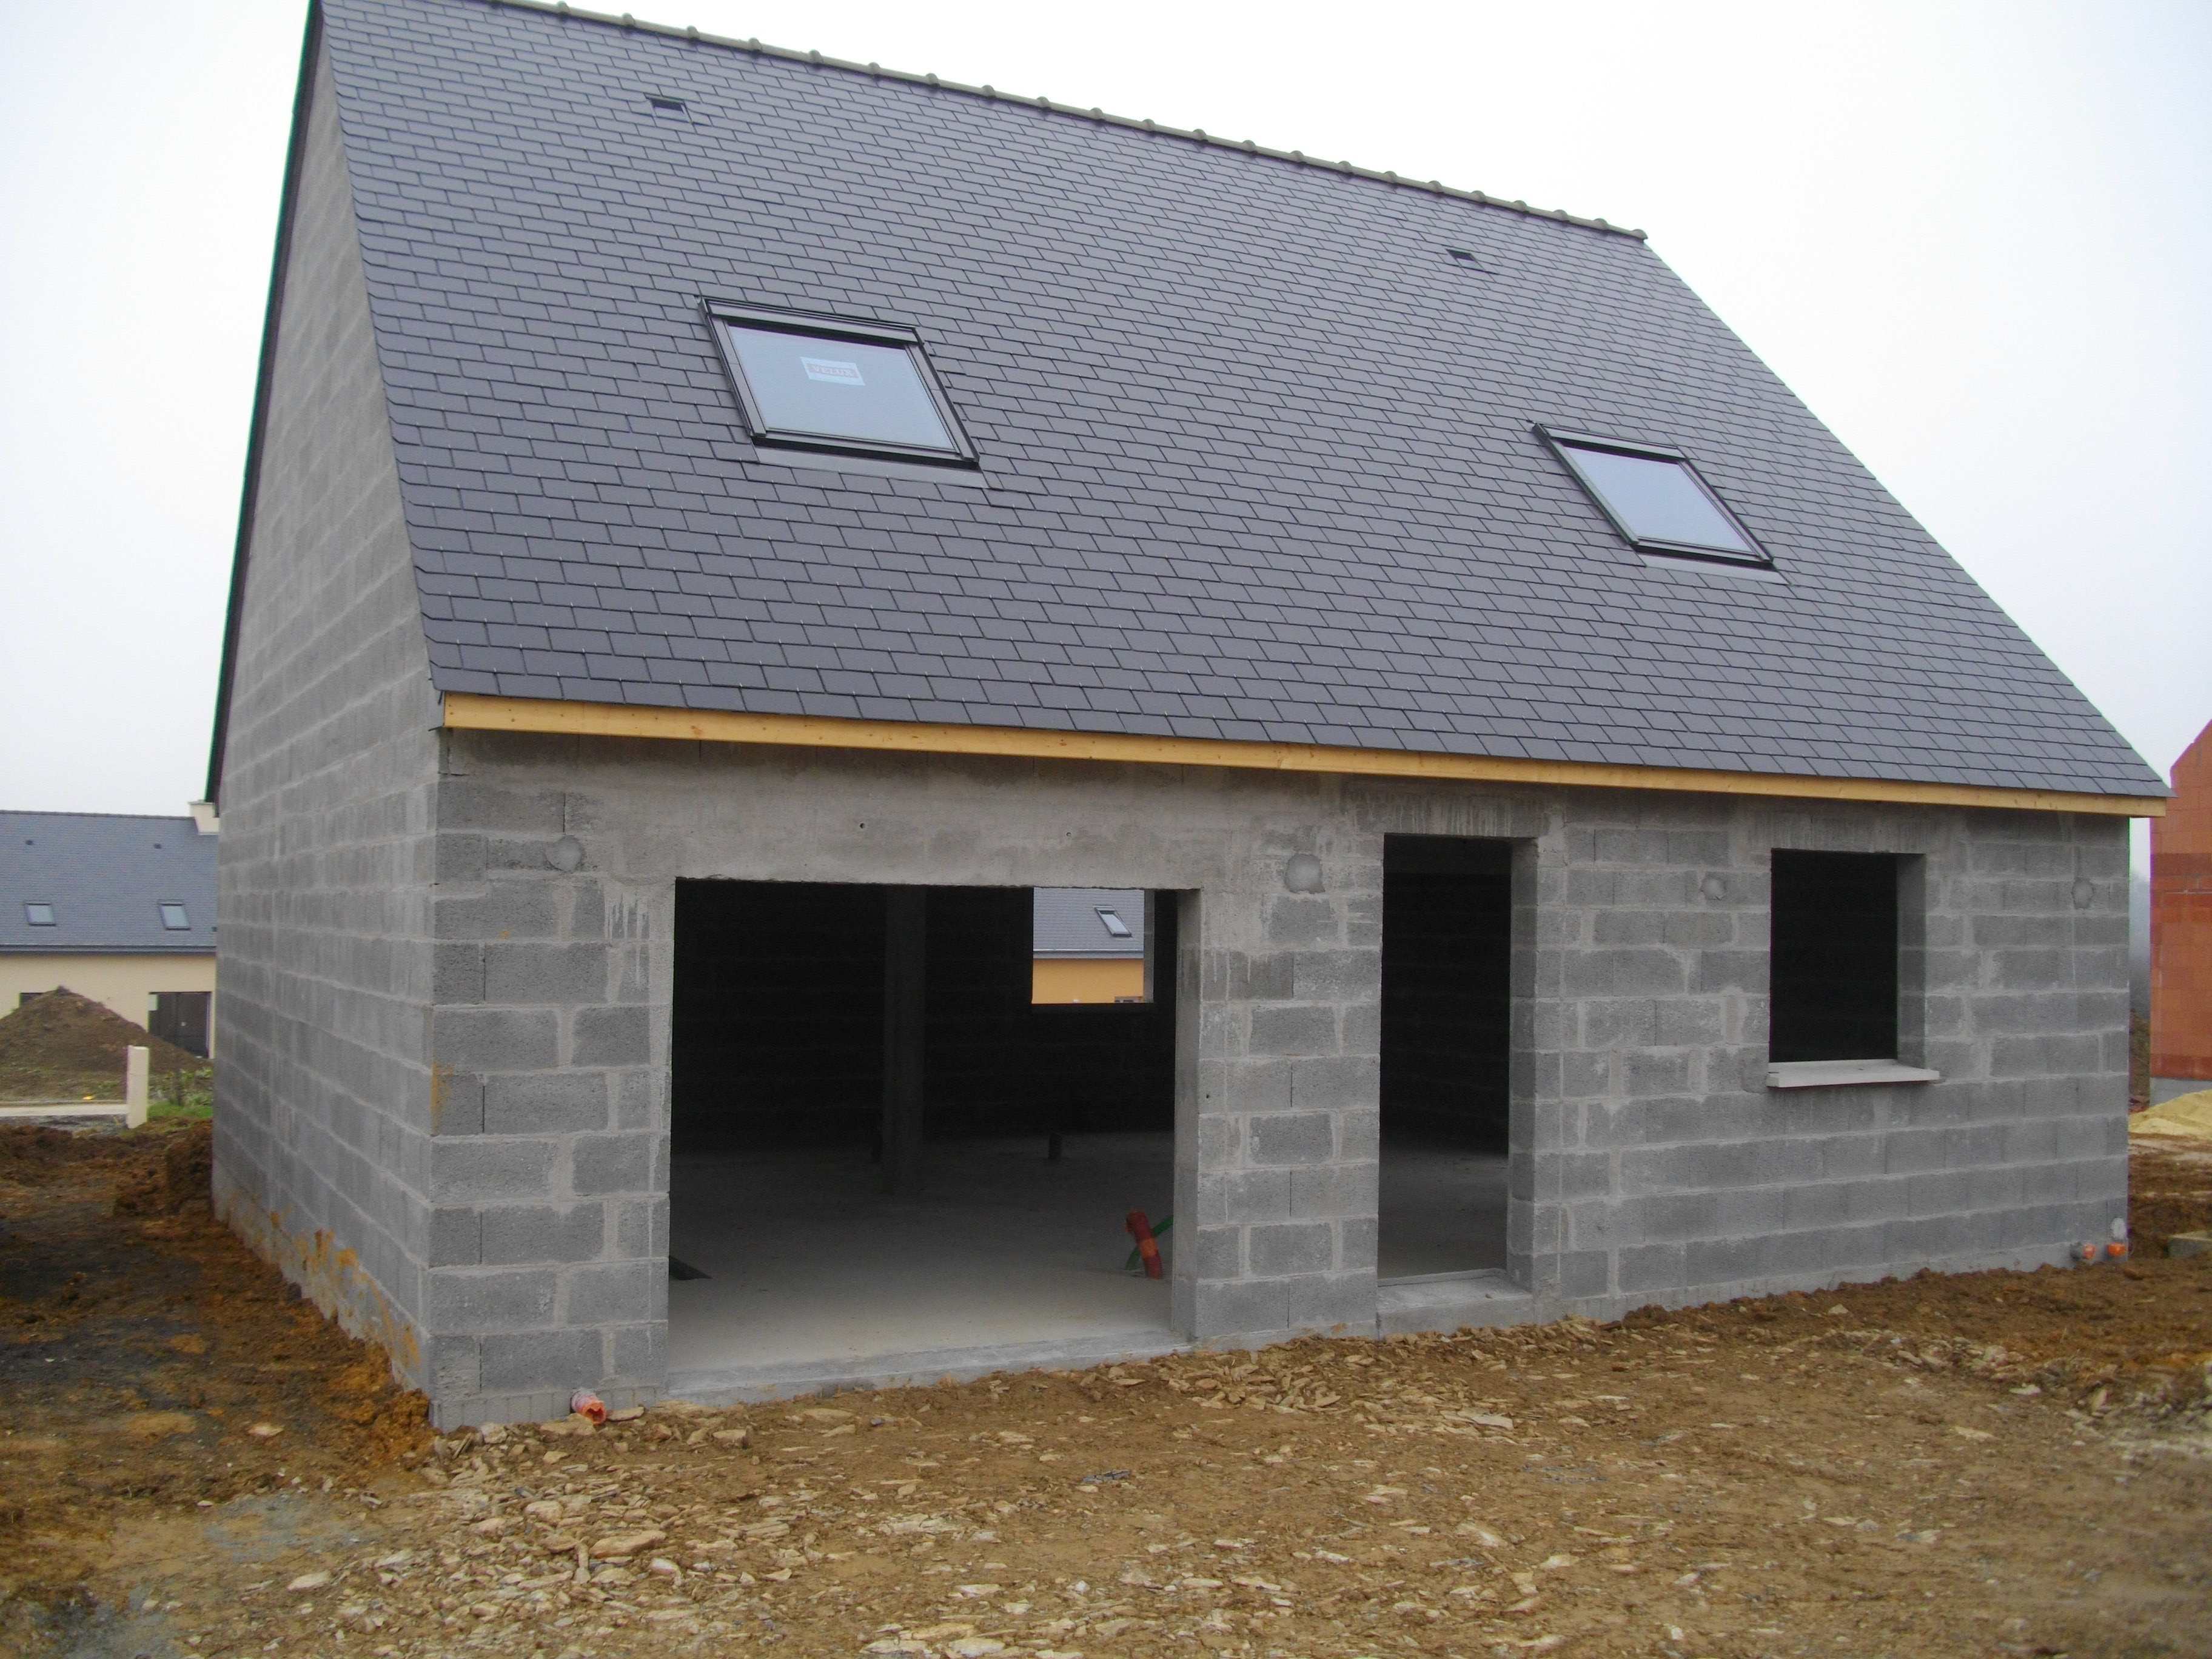 Mikit rennes nord for Constructeur maison mikit